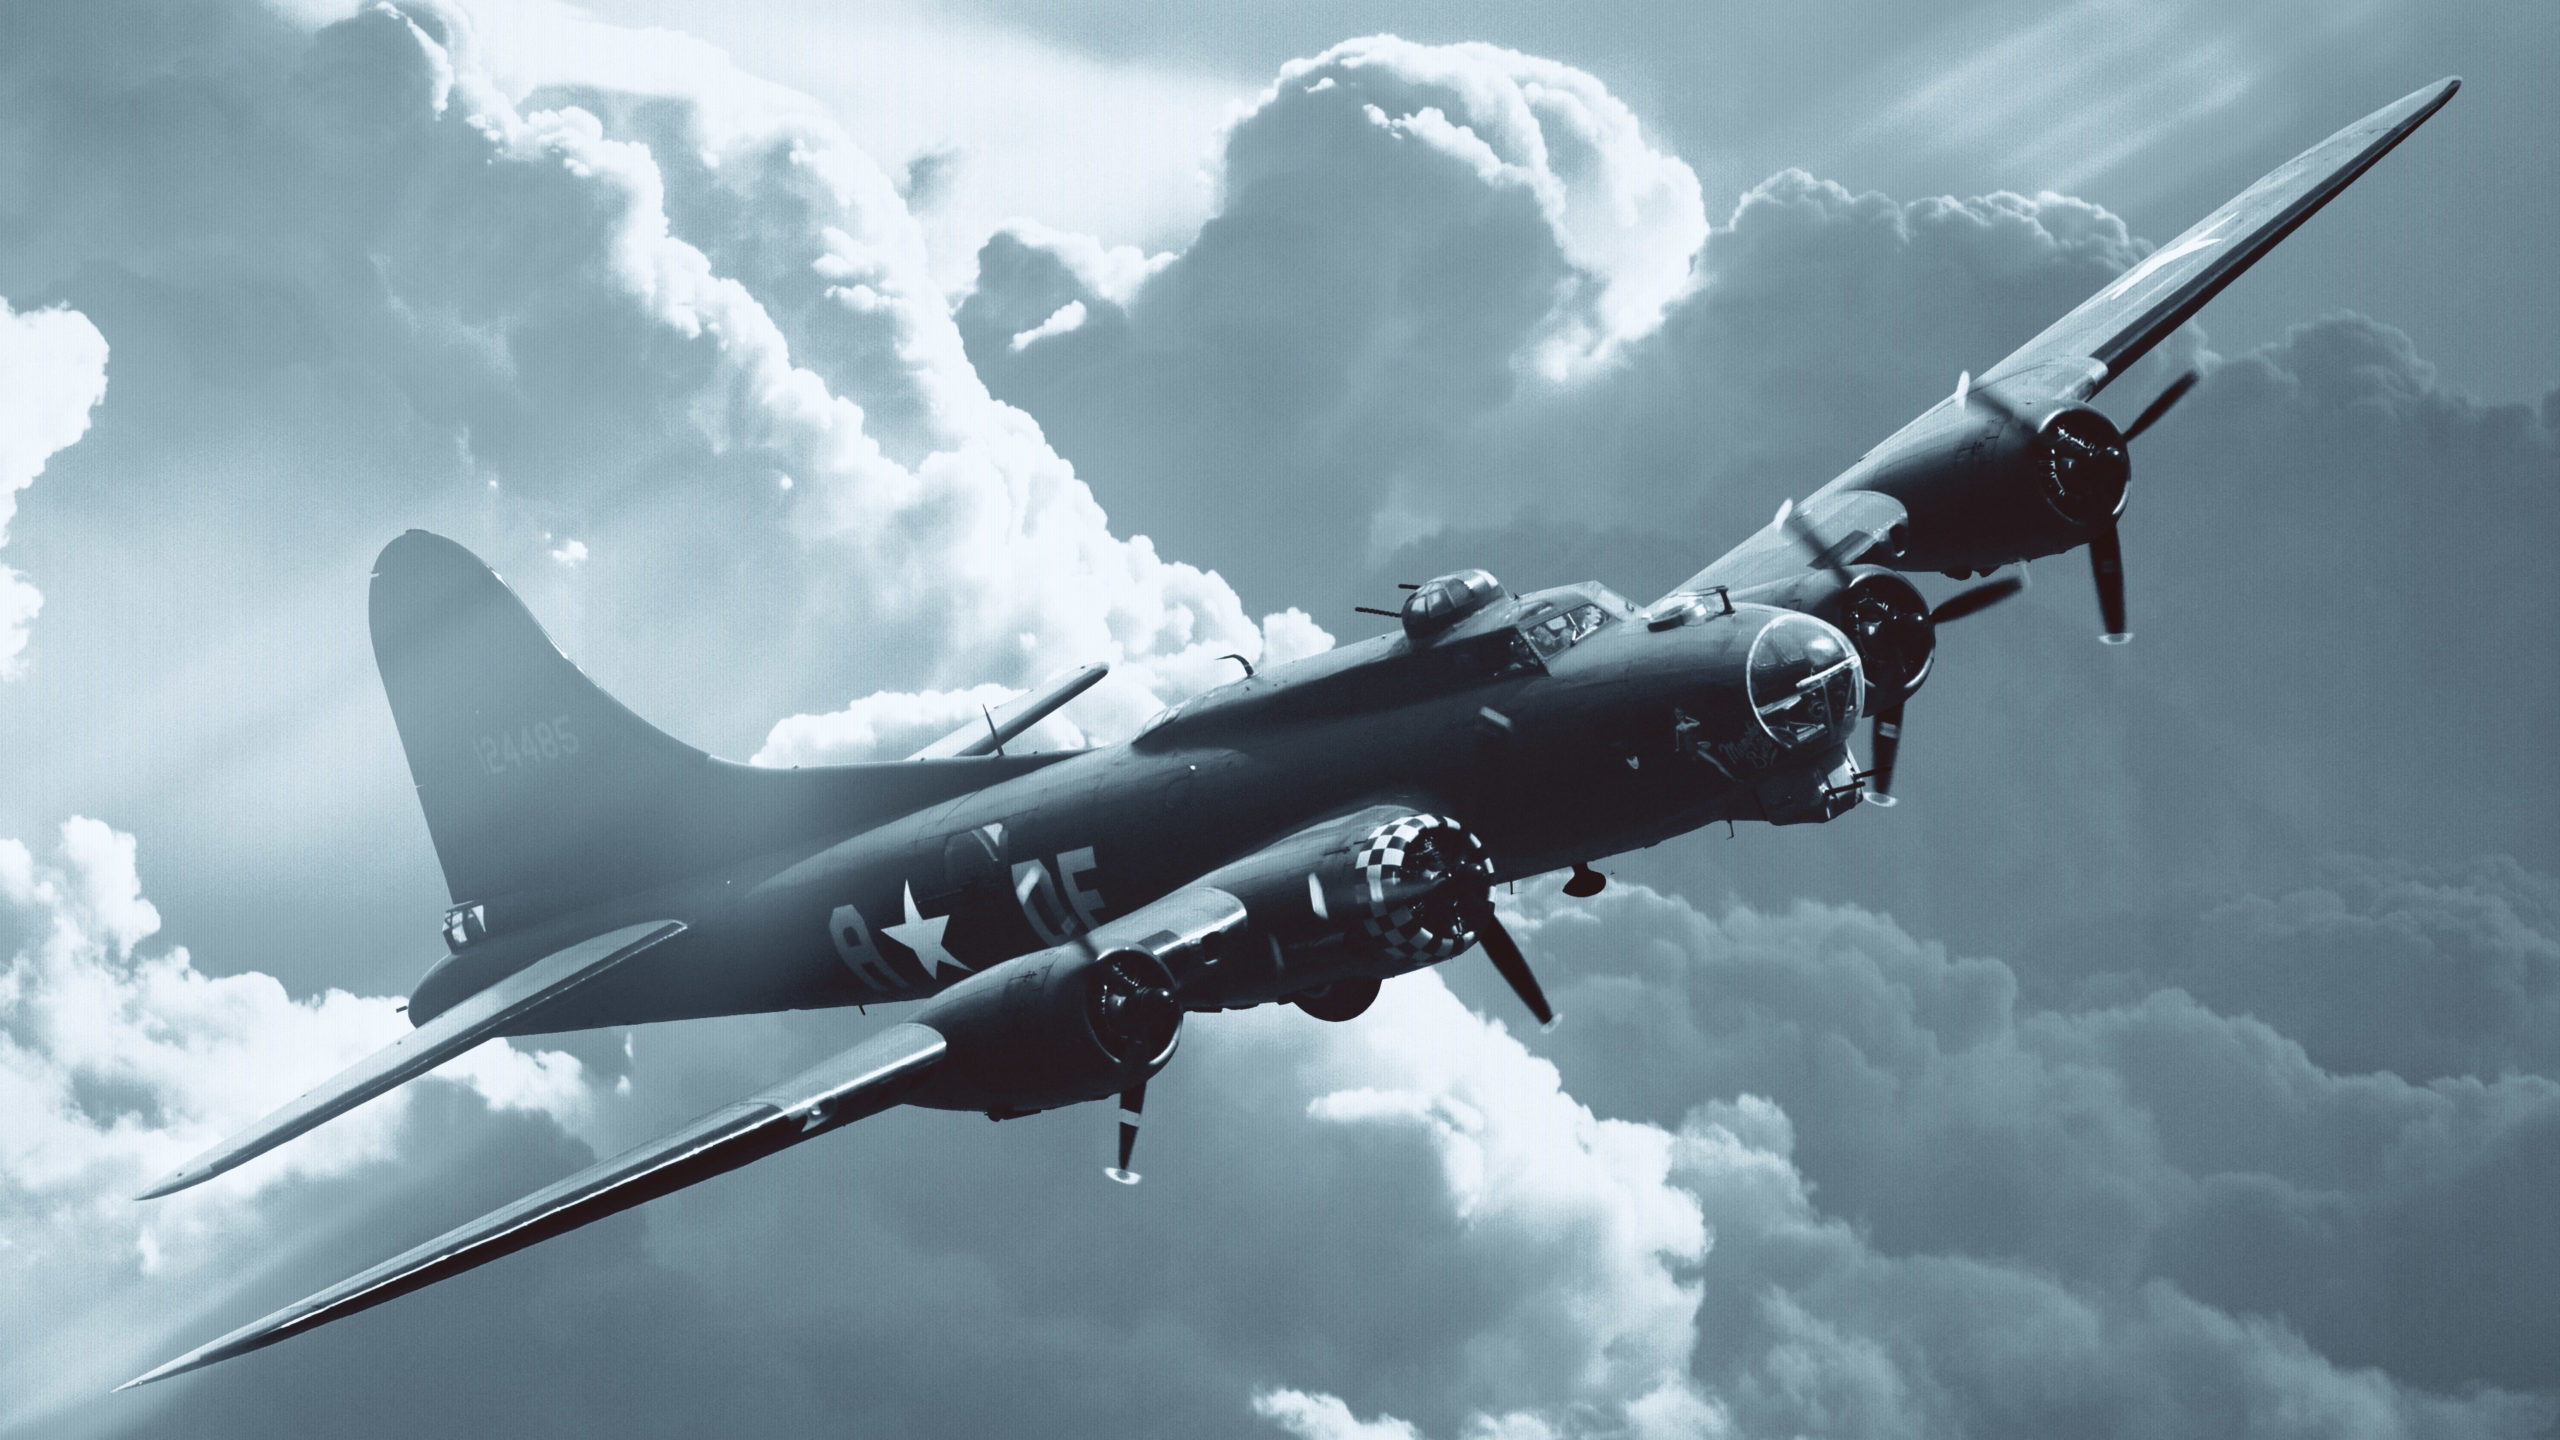 064 B 17 Flying Fortress The Fighter Pilot Podcast